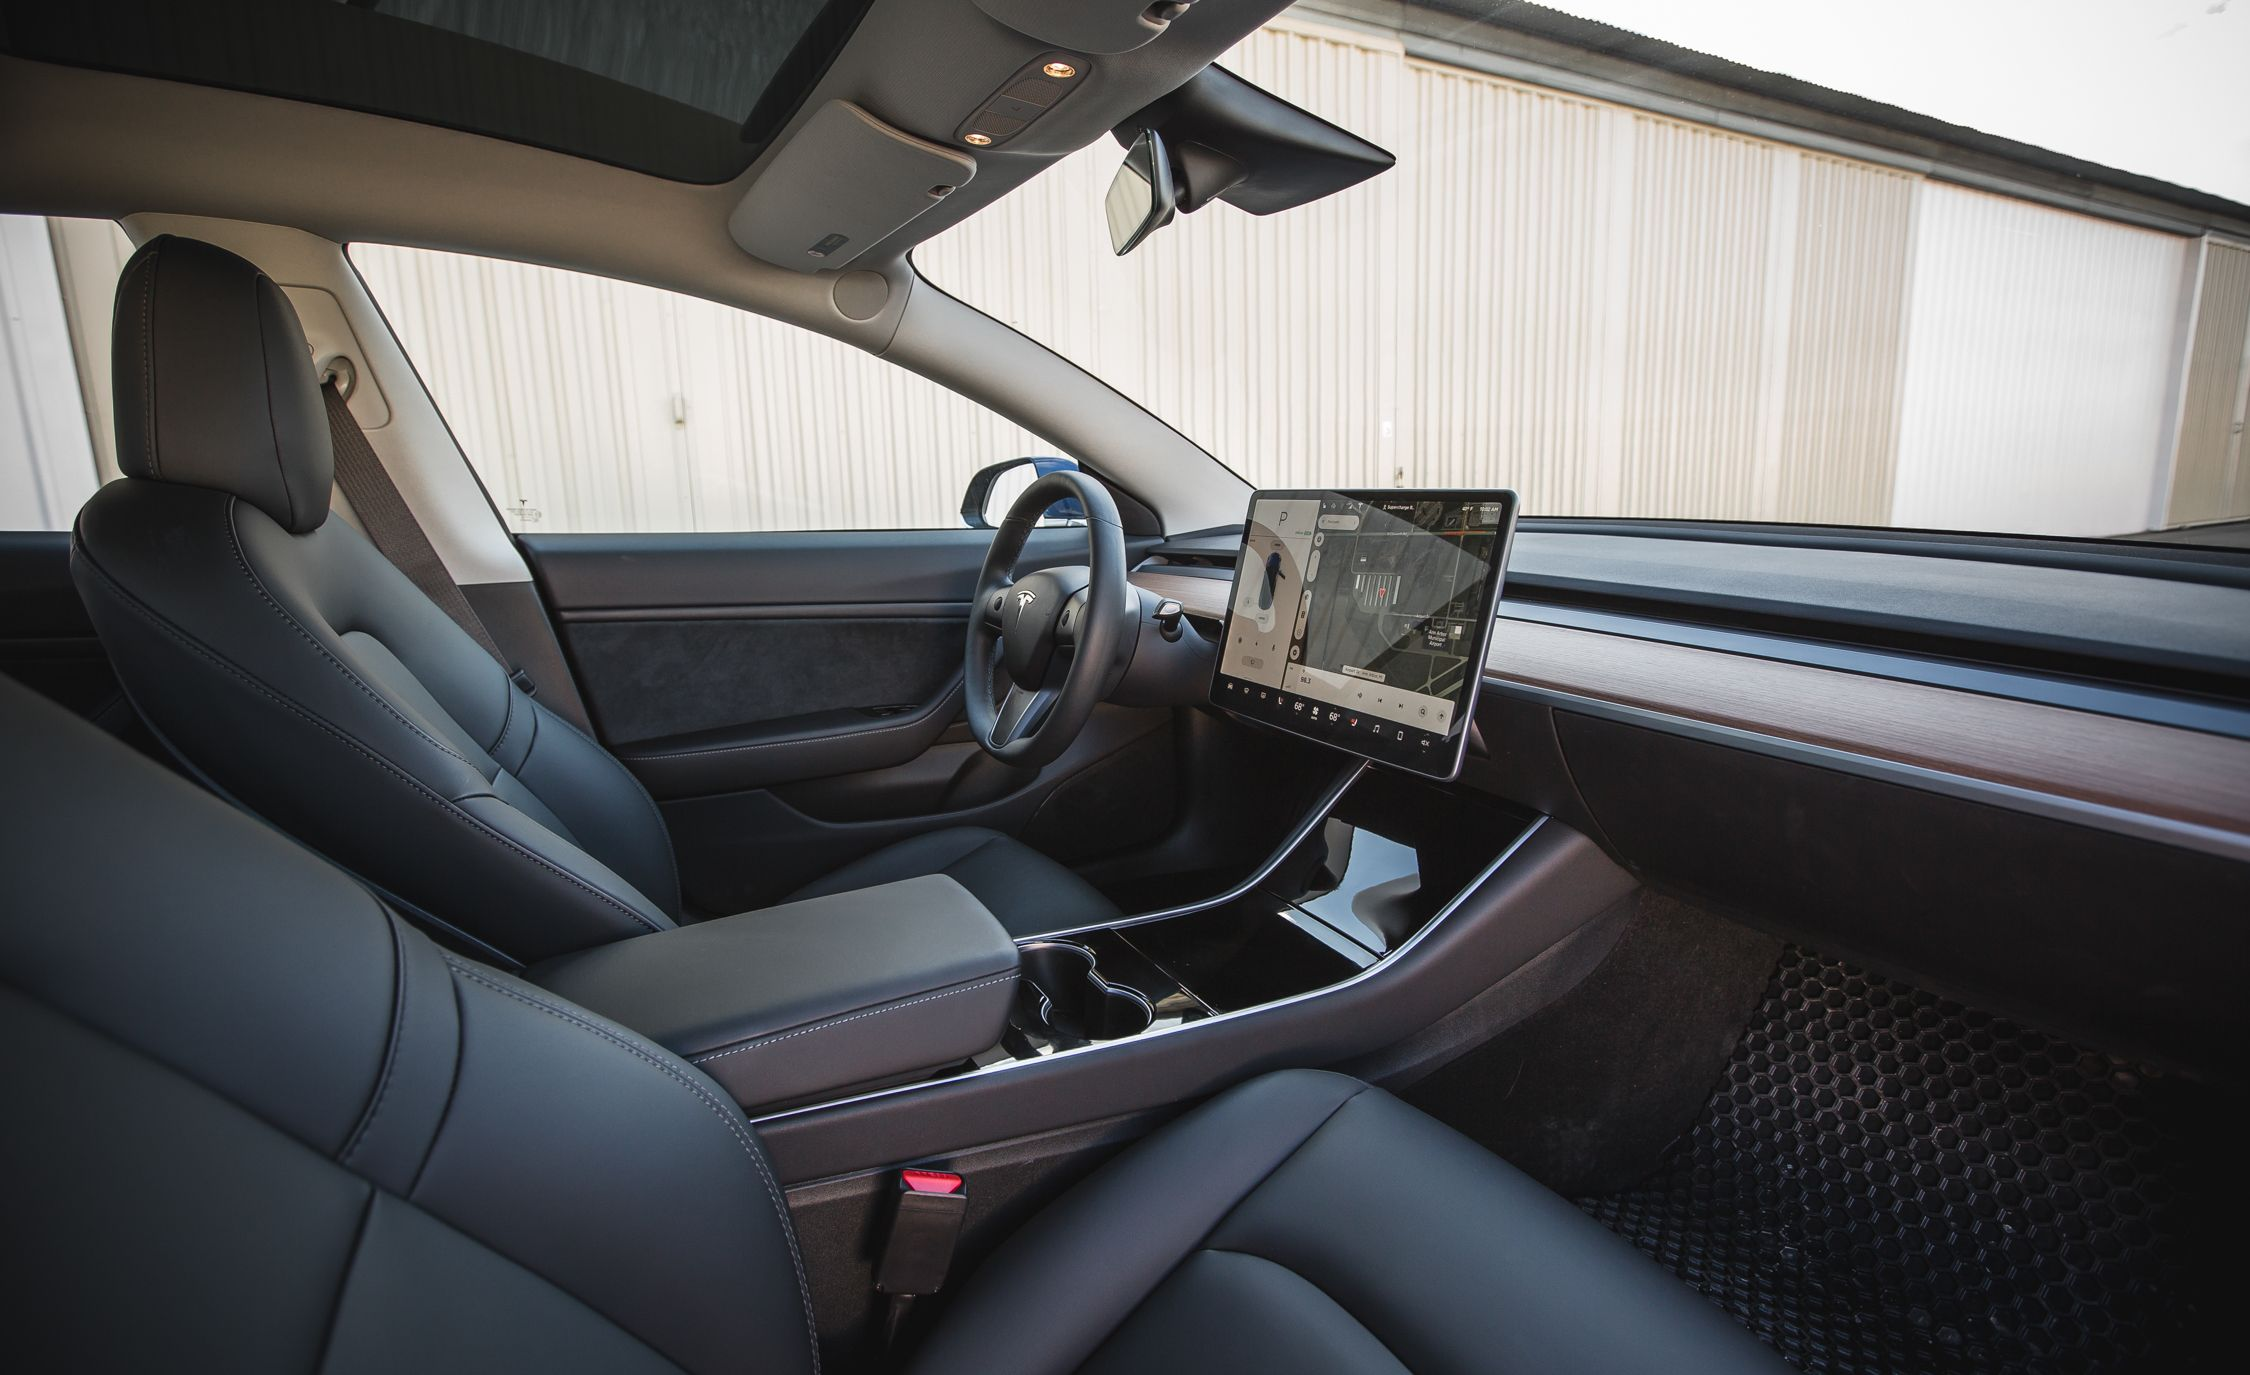 Tesla Moves to Fully Vegan, Leather-Free Interiors in Model